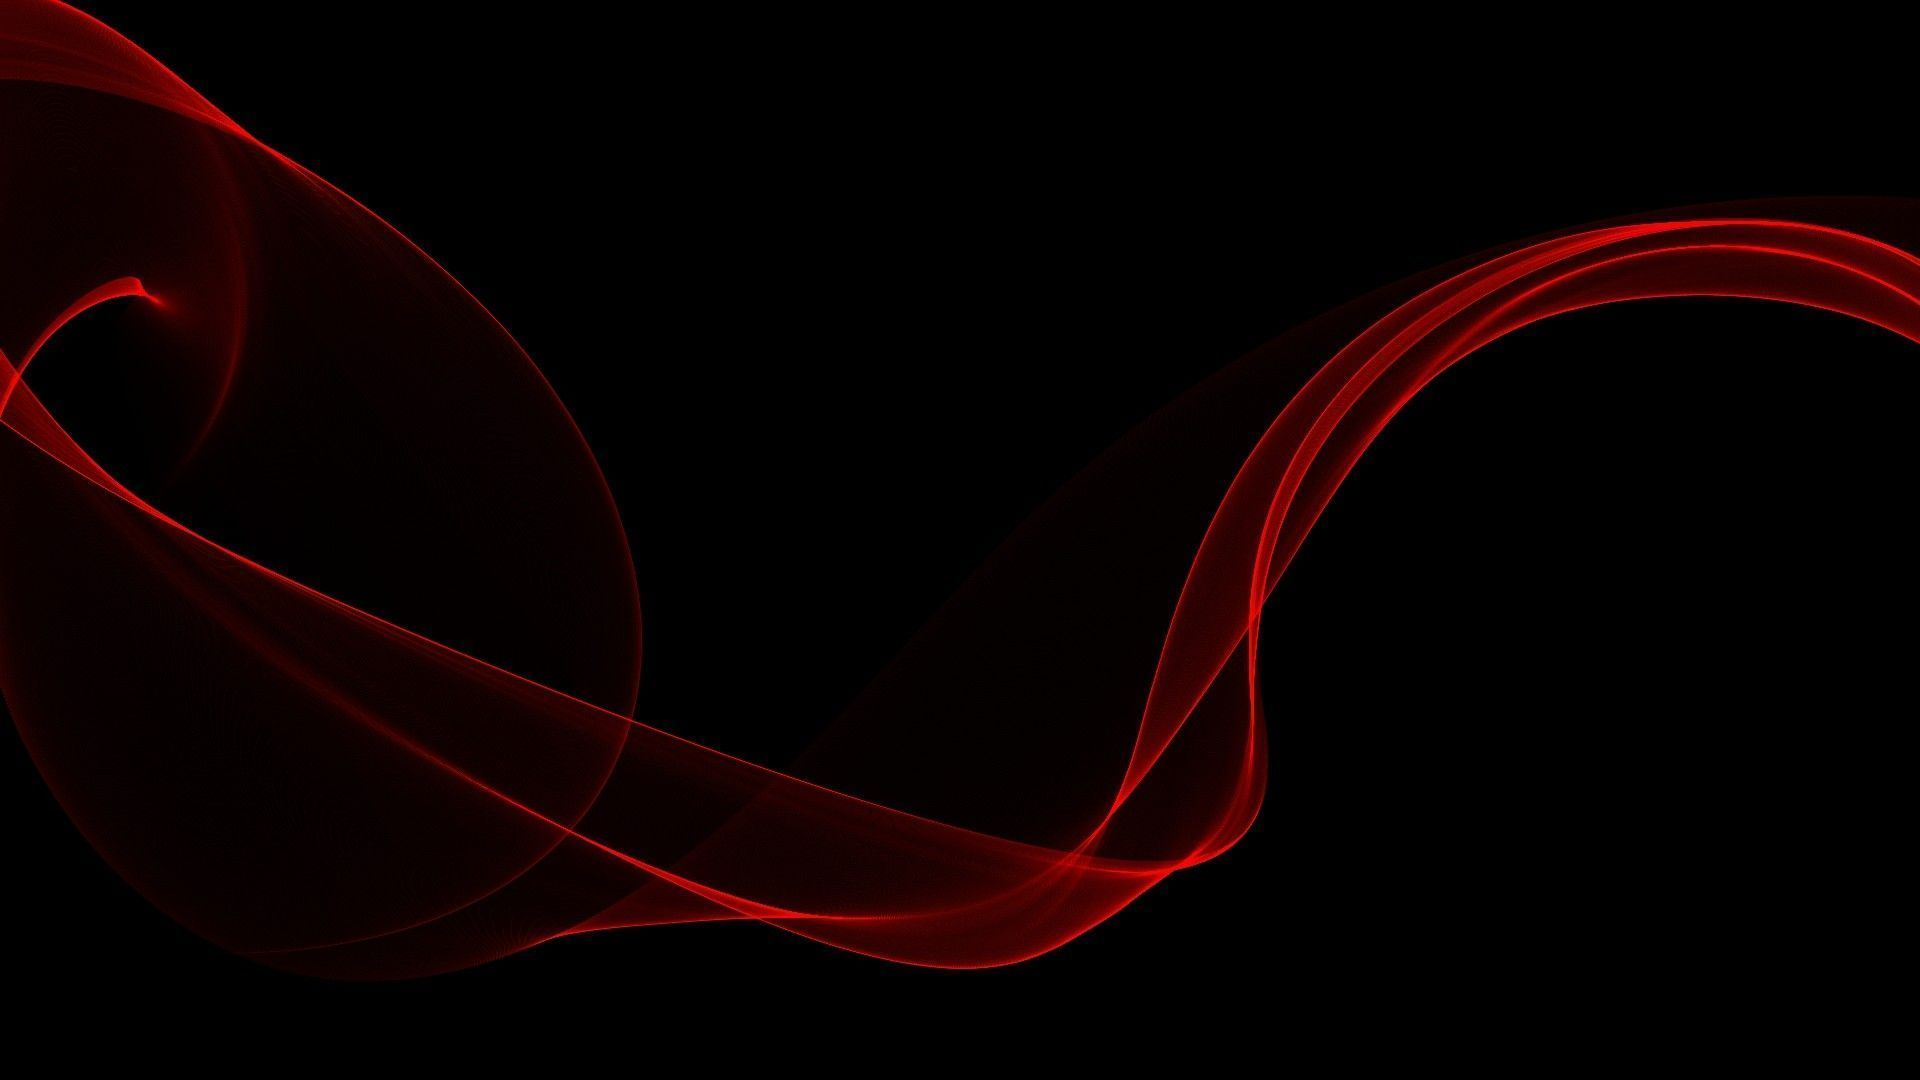 Xiaomi Redmi Note 5 Pro Wallpaper With Abstract Blue Light: Black And Red Abstract Wallpaper 19